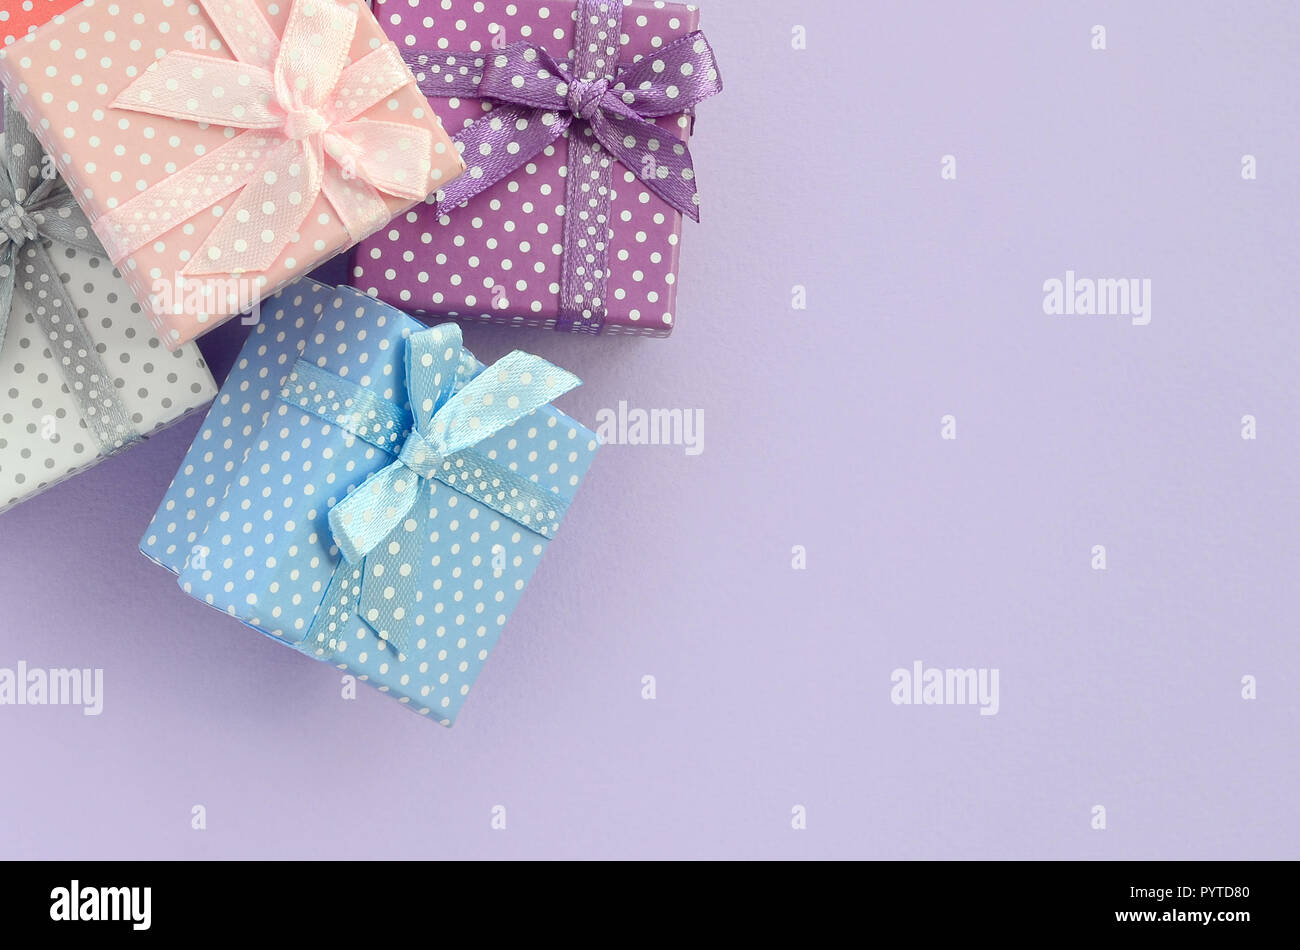 Many Colored Presents On White Stock Photos & Many Colored